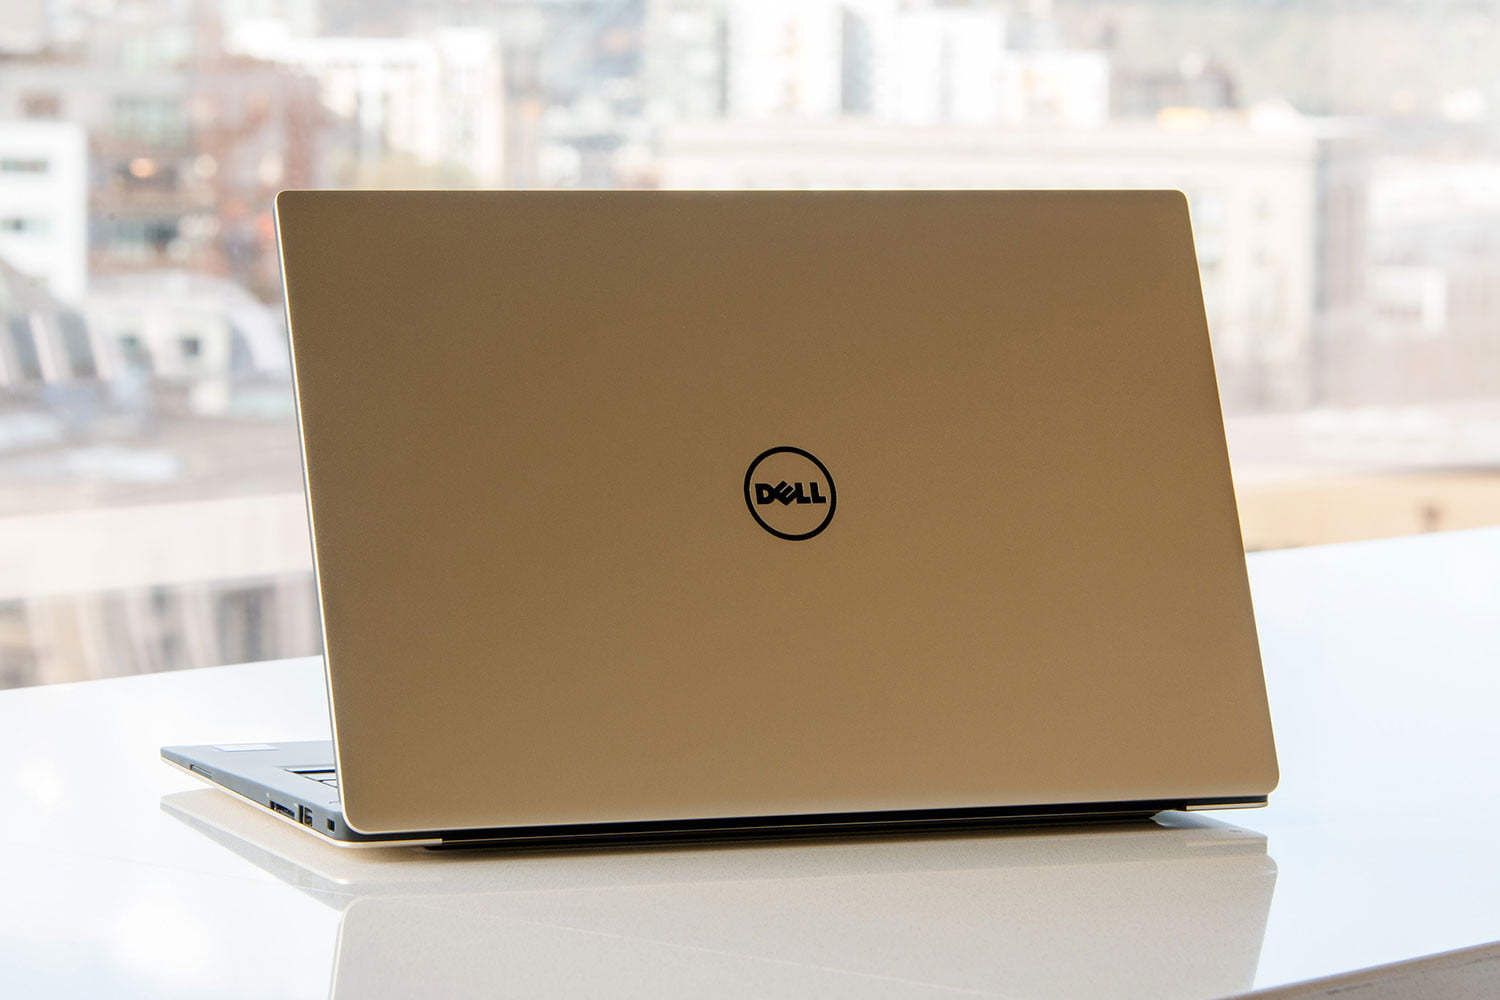 Is dell any good? Dell laptops, dell computers, do they work well? dell review dell products?